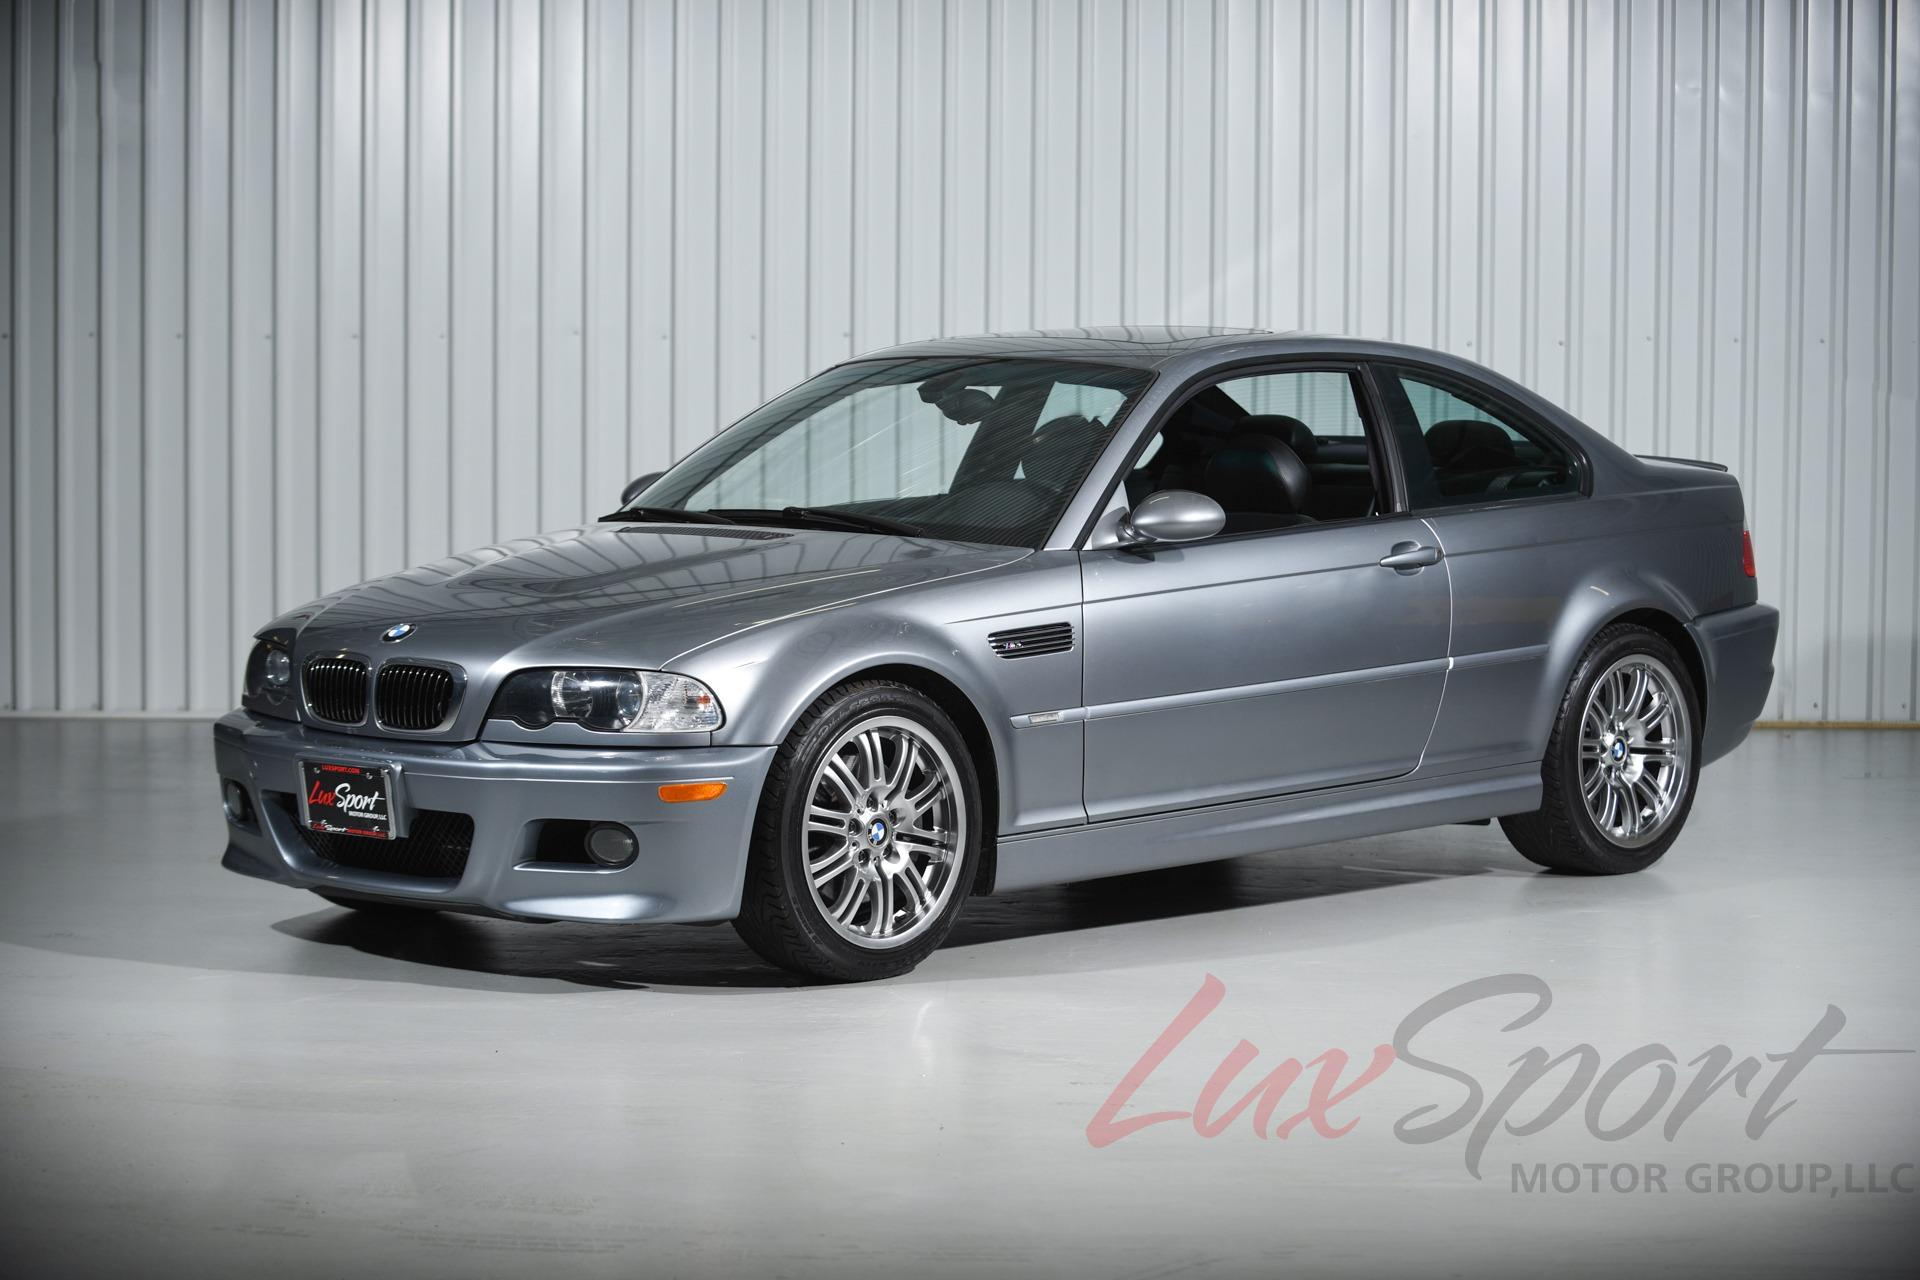 BMW E46 M3 >> 2004 Bmw E46 M3 Coupe Stock 2004125 For Sale Near Syosset